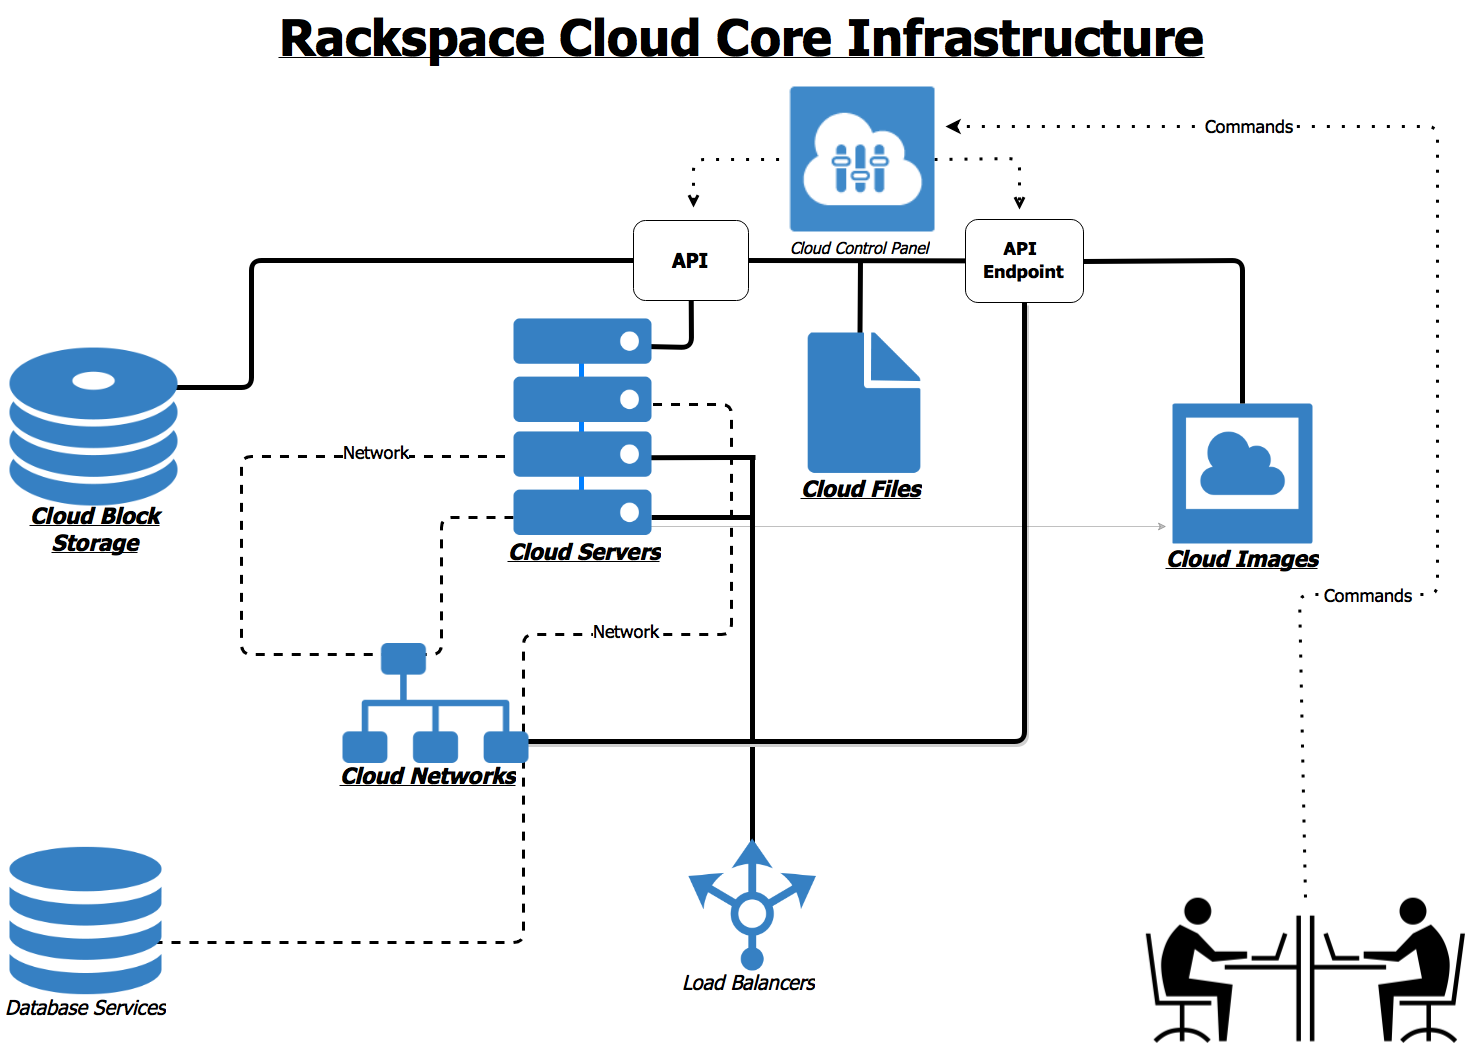 Cloud Servers, Cloud Networks, Cloud Images, Cloud Block Storage, and Cloud Files are the Rackspace cloud's core infrastructure. From the Cloud Control Panel, you can send a request to the API for a cloud service. The service processes your request.*